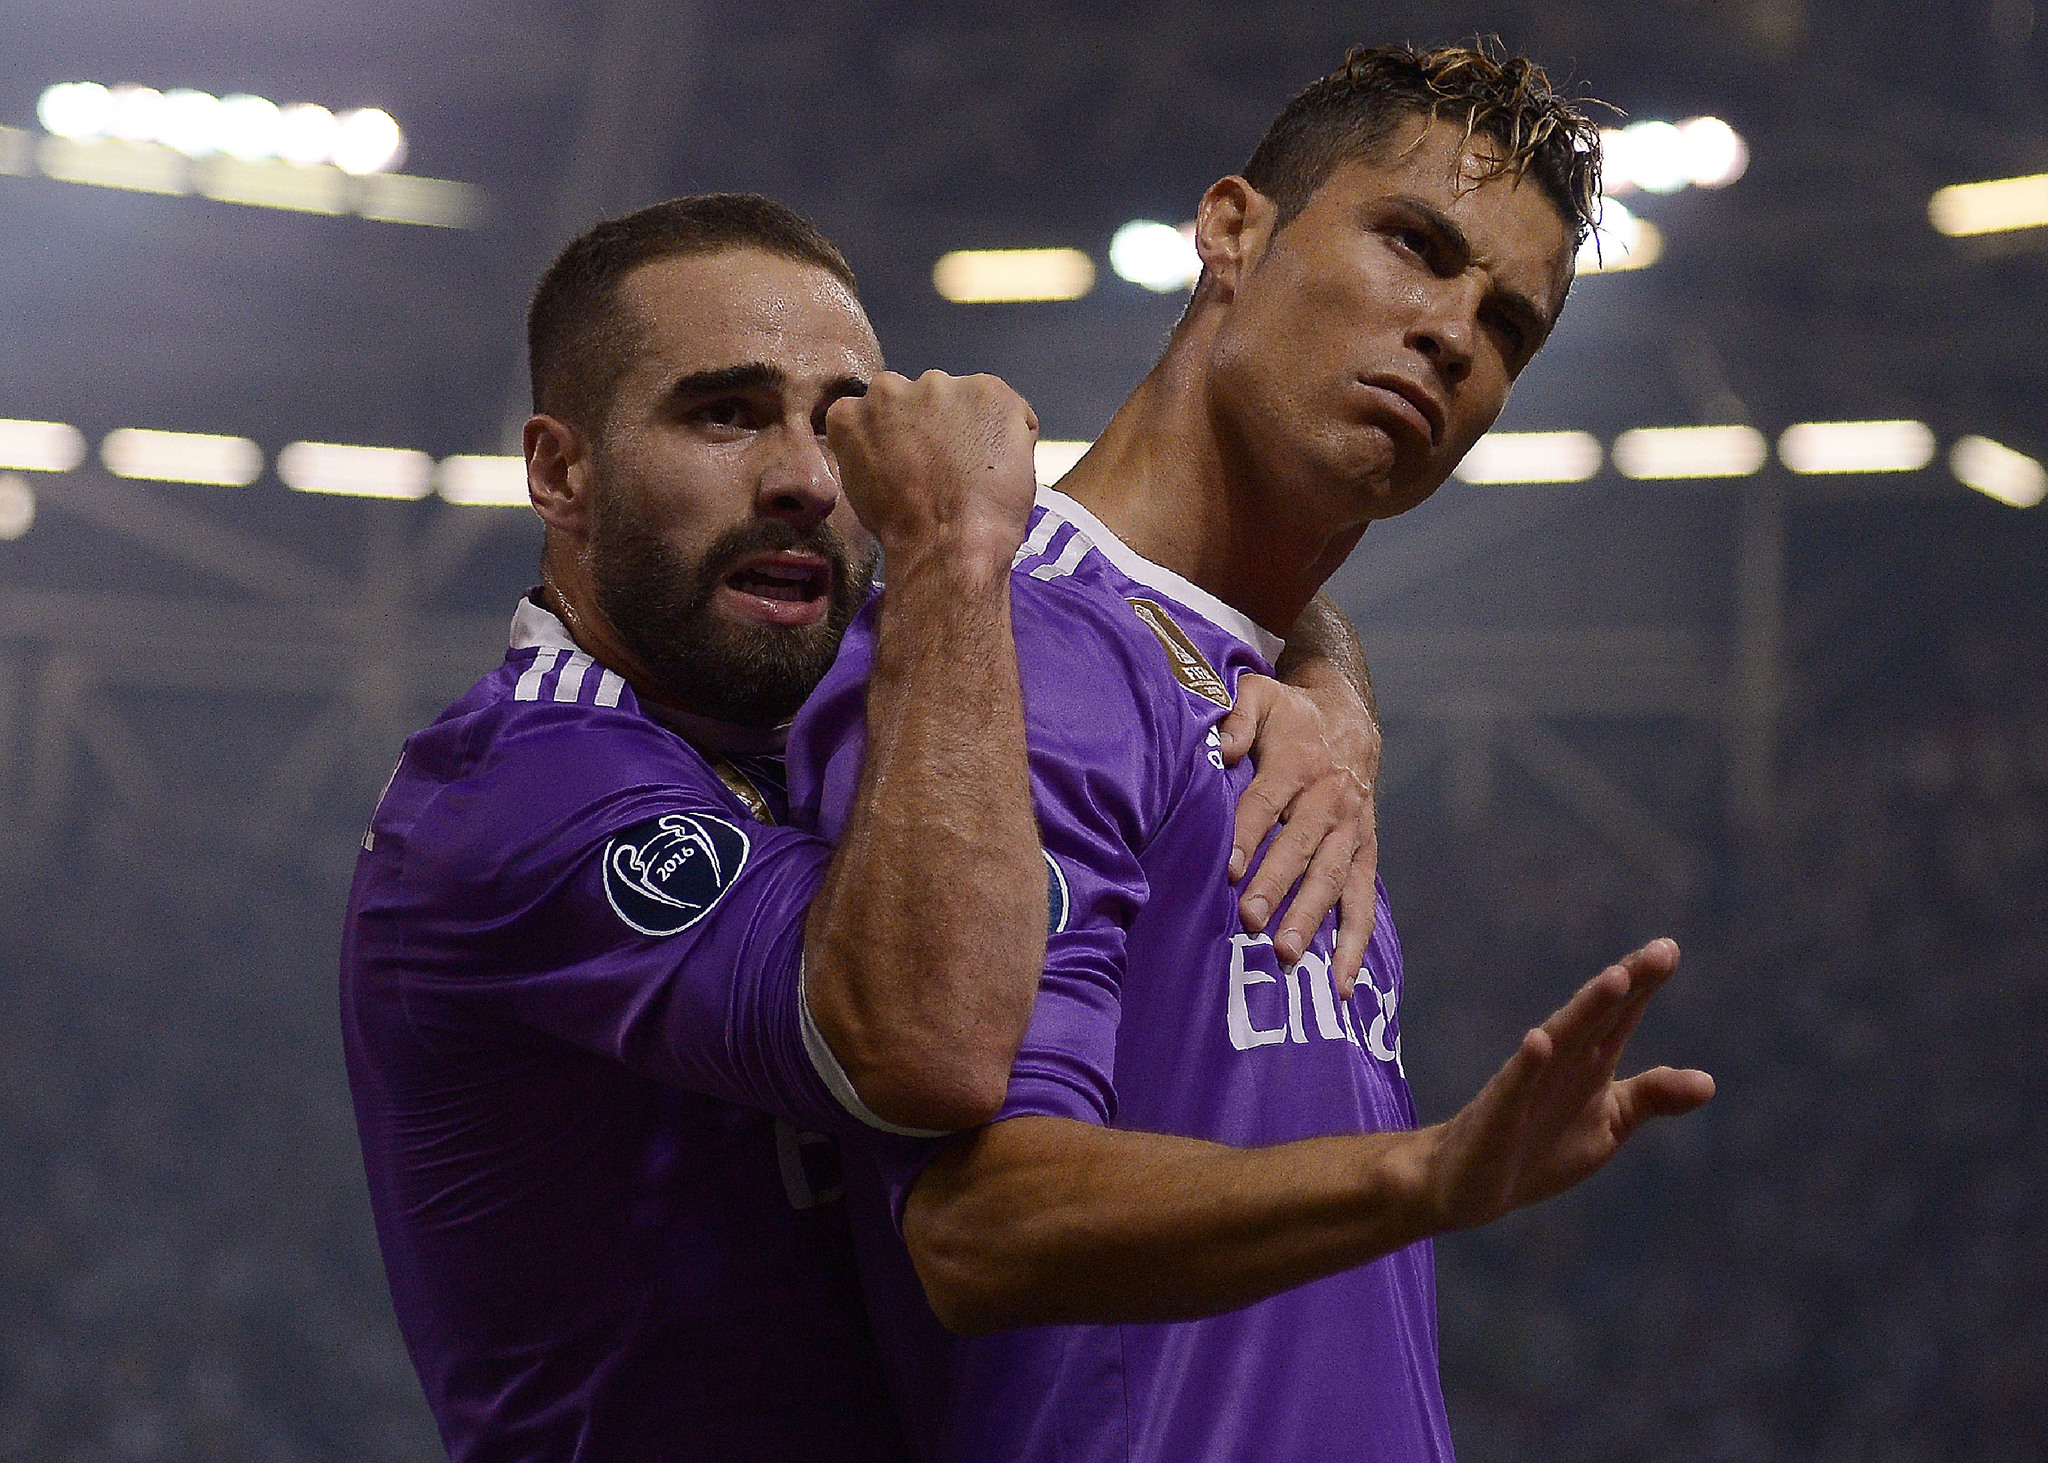 TOPSHOT - Real Madrids Portuguese striker Cristiano Ronaldo (R) celebrates with Real Madrids Spanish defender Dani <HIT>Carvajal</HIT> after scoring during the UEFA Champions League final football match between Juventus and Real Madrid at The Principality Stadium in <HIT>Cardiff</HIT>, south Wales, on June 3, 2017. / AFP PHOTO / Filippo MONTEFORTE